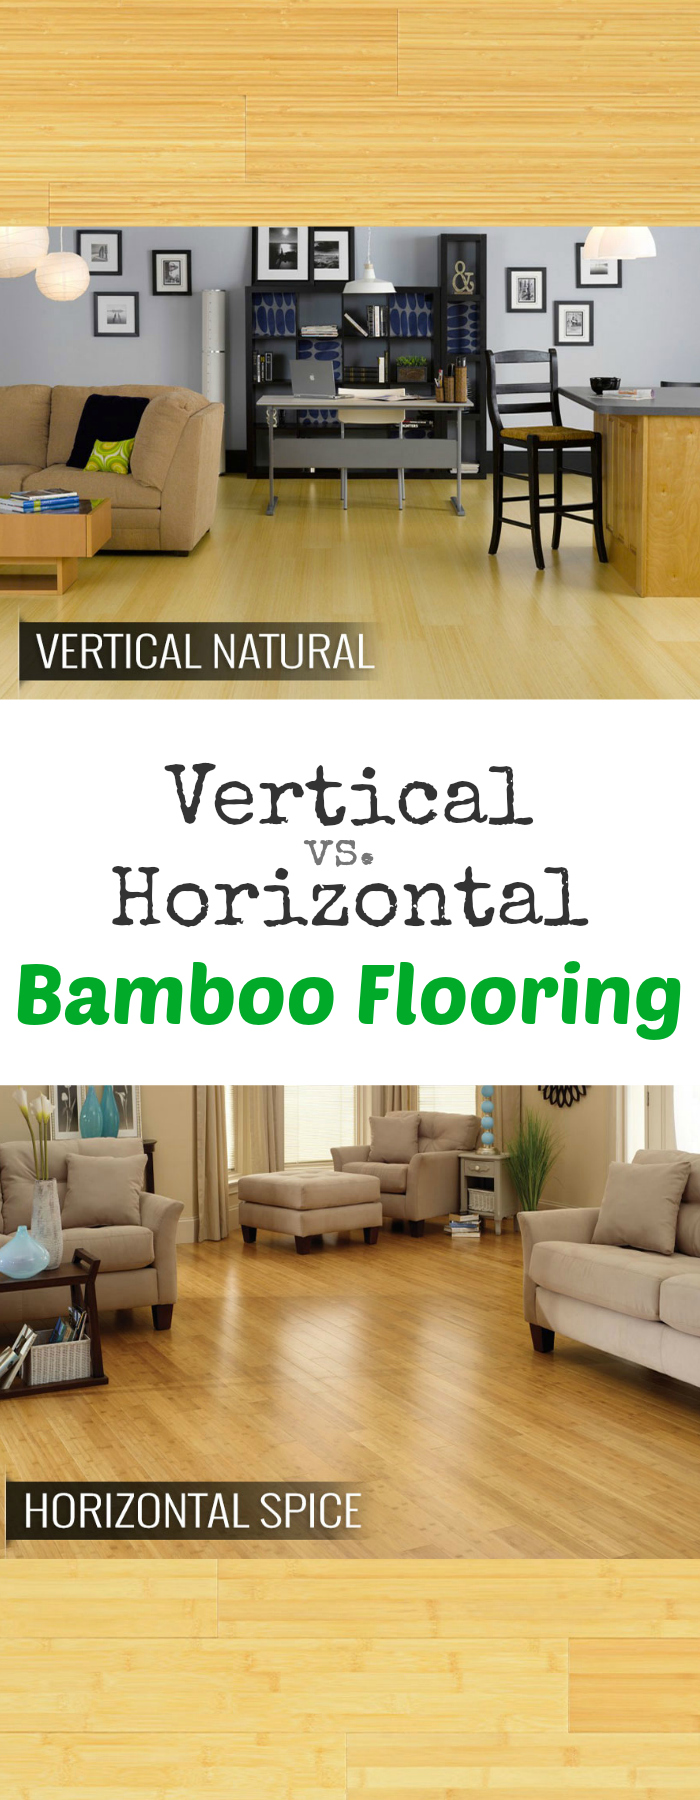 cost layout bamboo amazing flooring depot collection floor home beautiful photograph